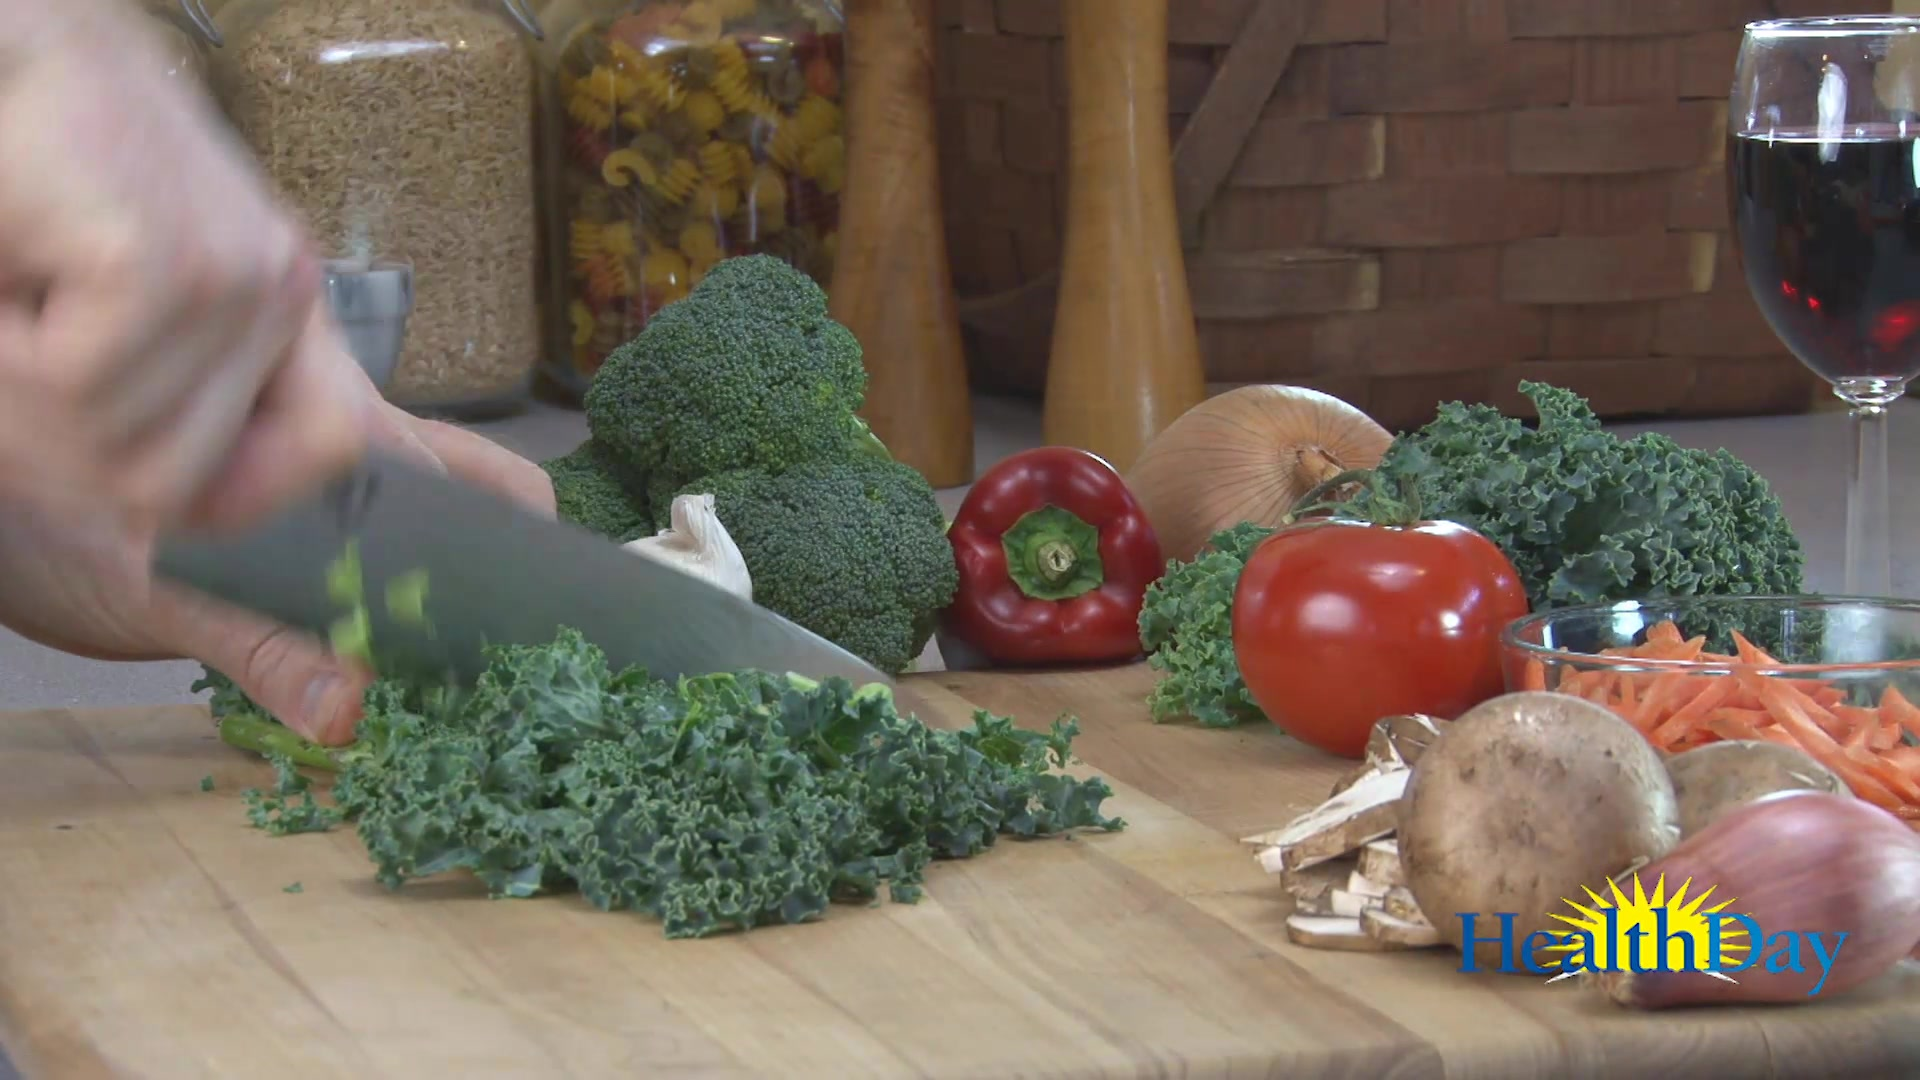 Leafy Greens and Glaucoma Risk